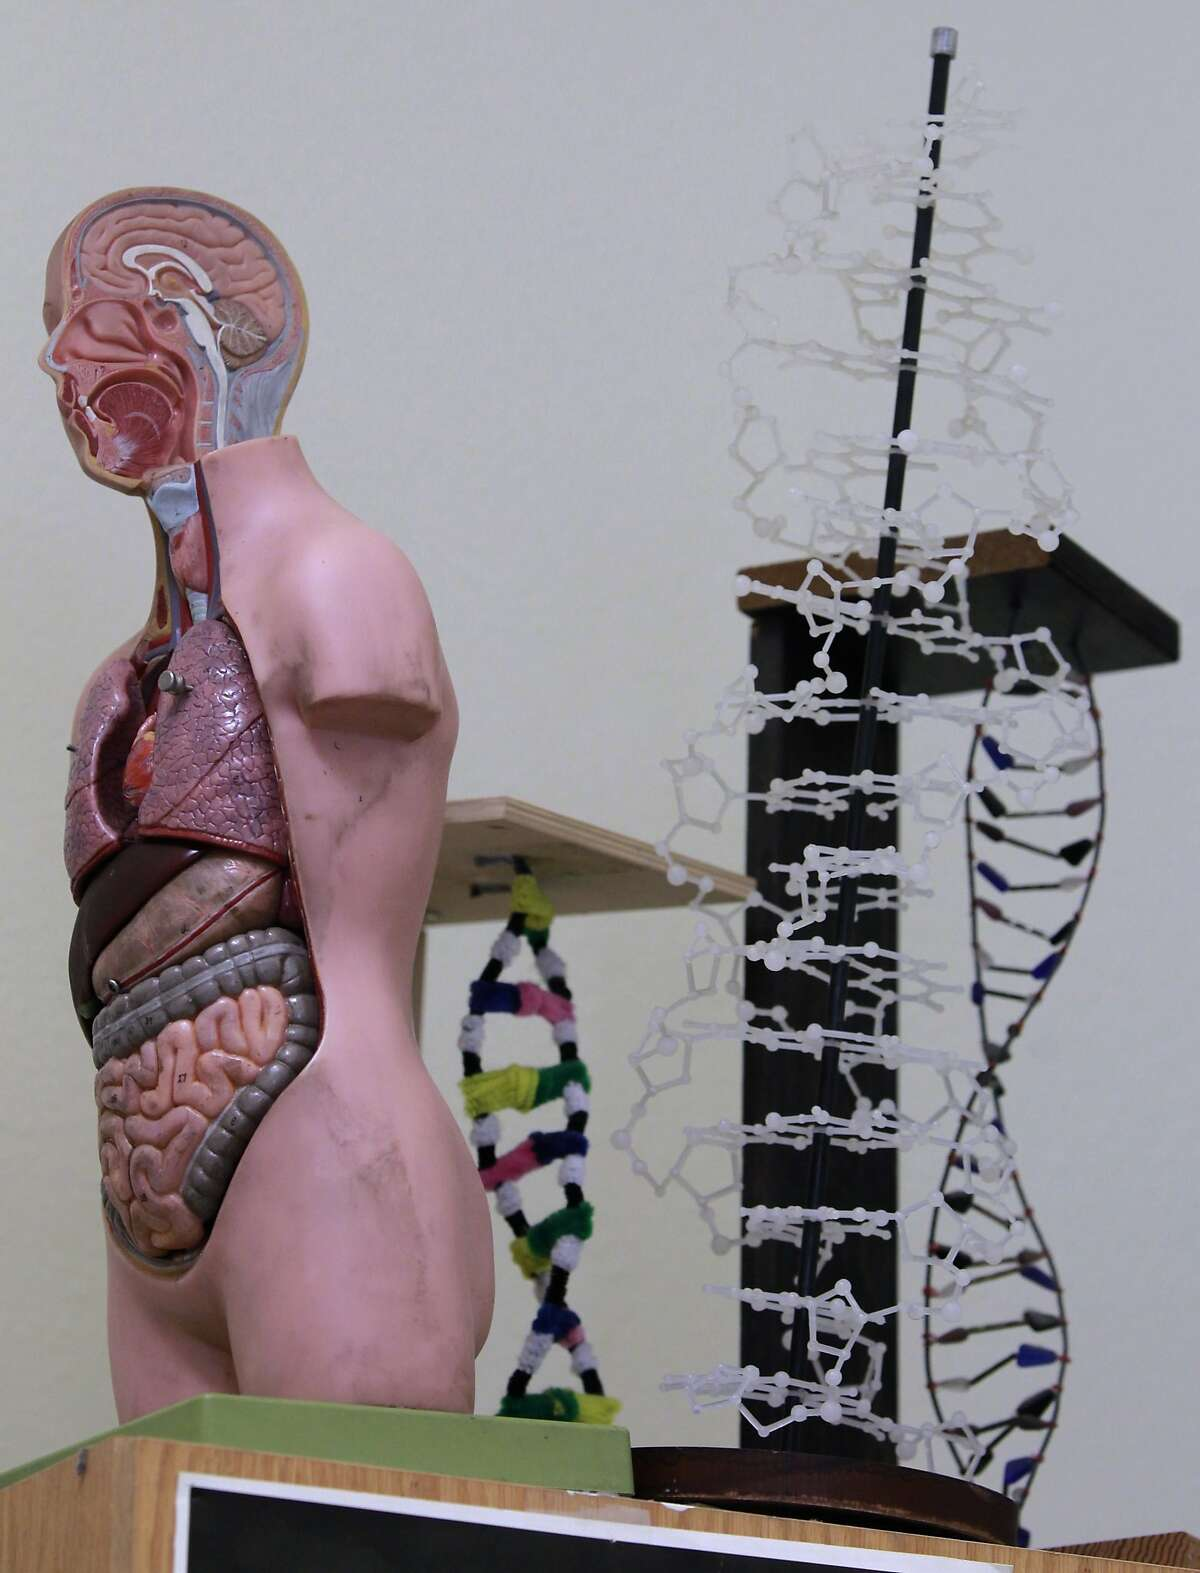 Models of the human body and strands of DNA are put away for the summer break in science teacher Glenn Wolkenfeld's Berkeley High School classroom in Berkeley, Calif. on Friday, June 13, 2014. Wolkenfeld has taught at Berkeley High for 15 years and has been named as one of the school district's top teachers of the year.